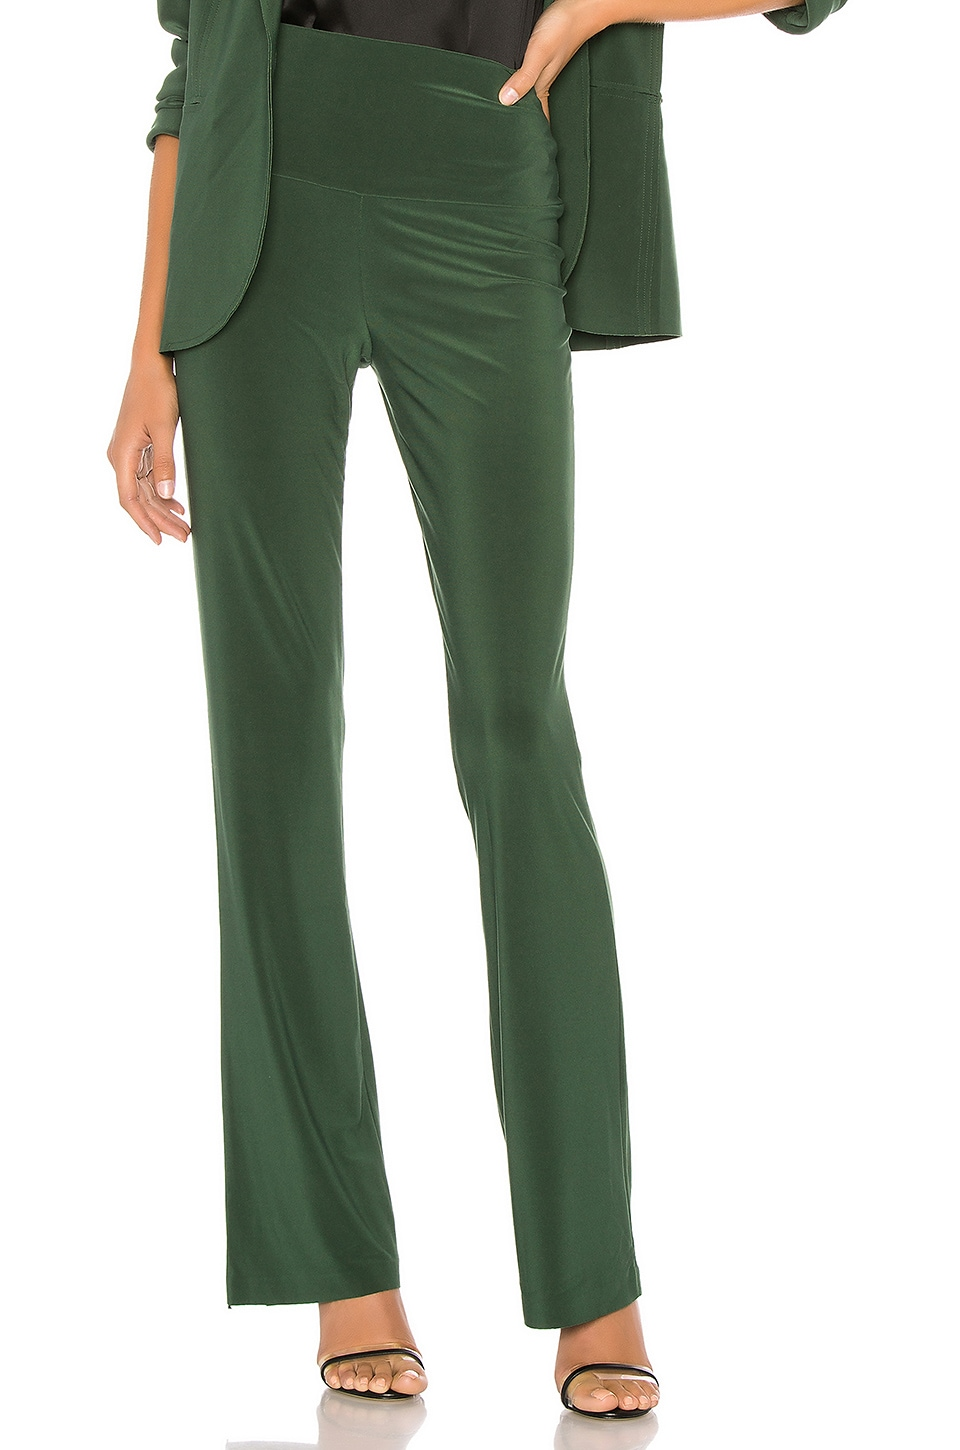 Norma Kamali Boot Pant in Forest Green